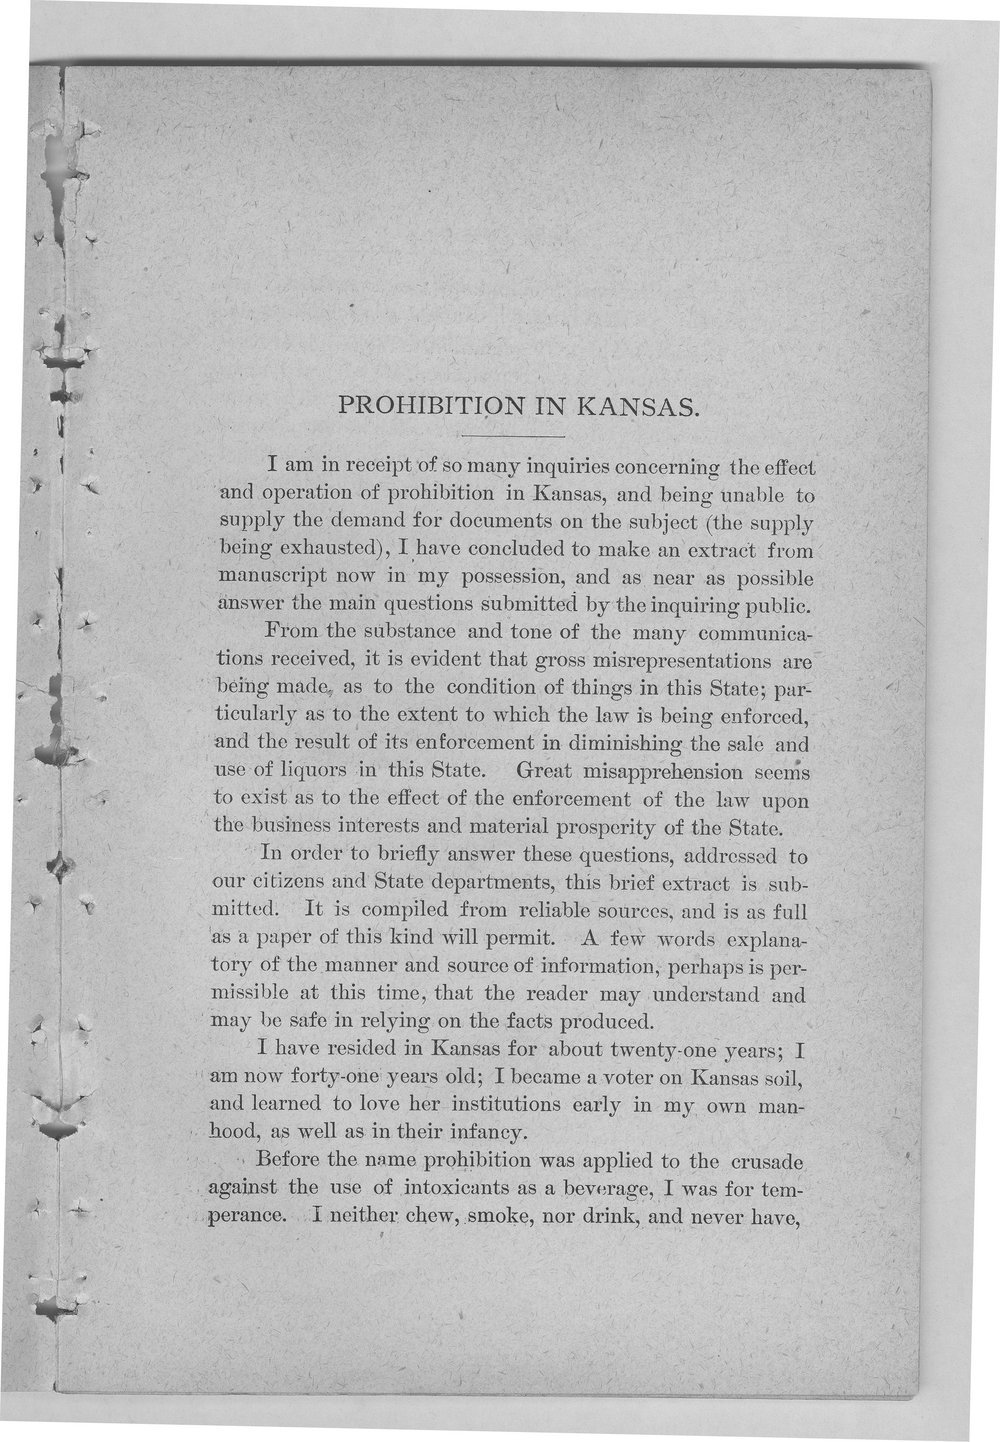 Prohibition in Kansas and the Prohibitory Law - 5